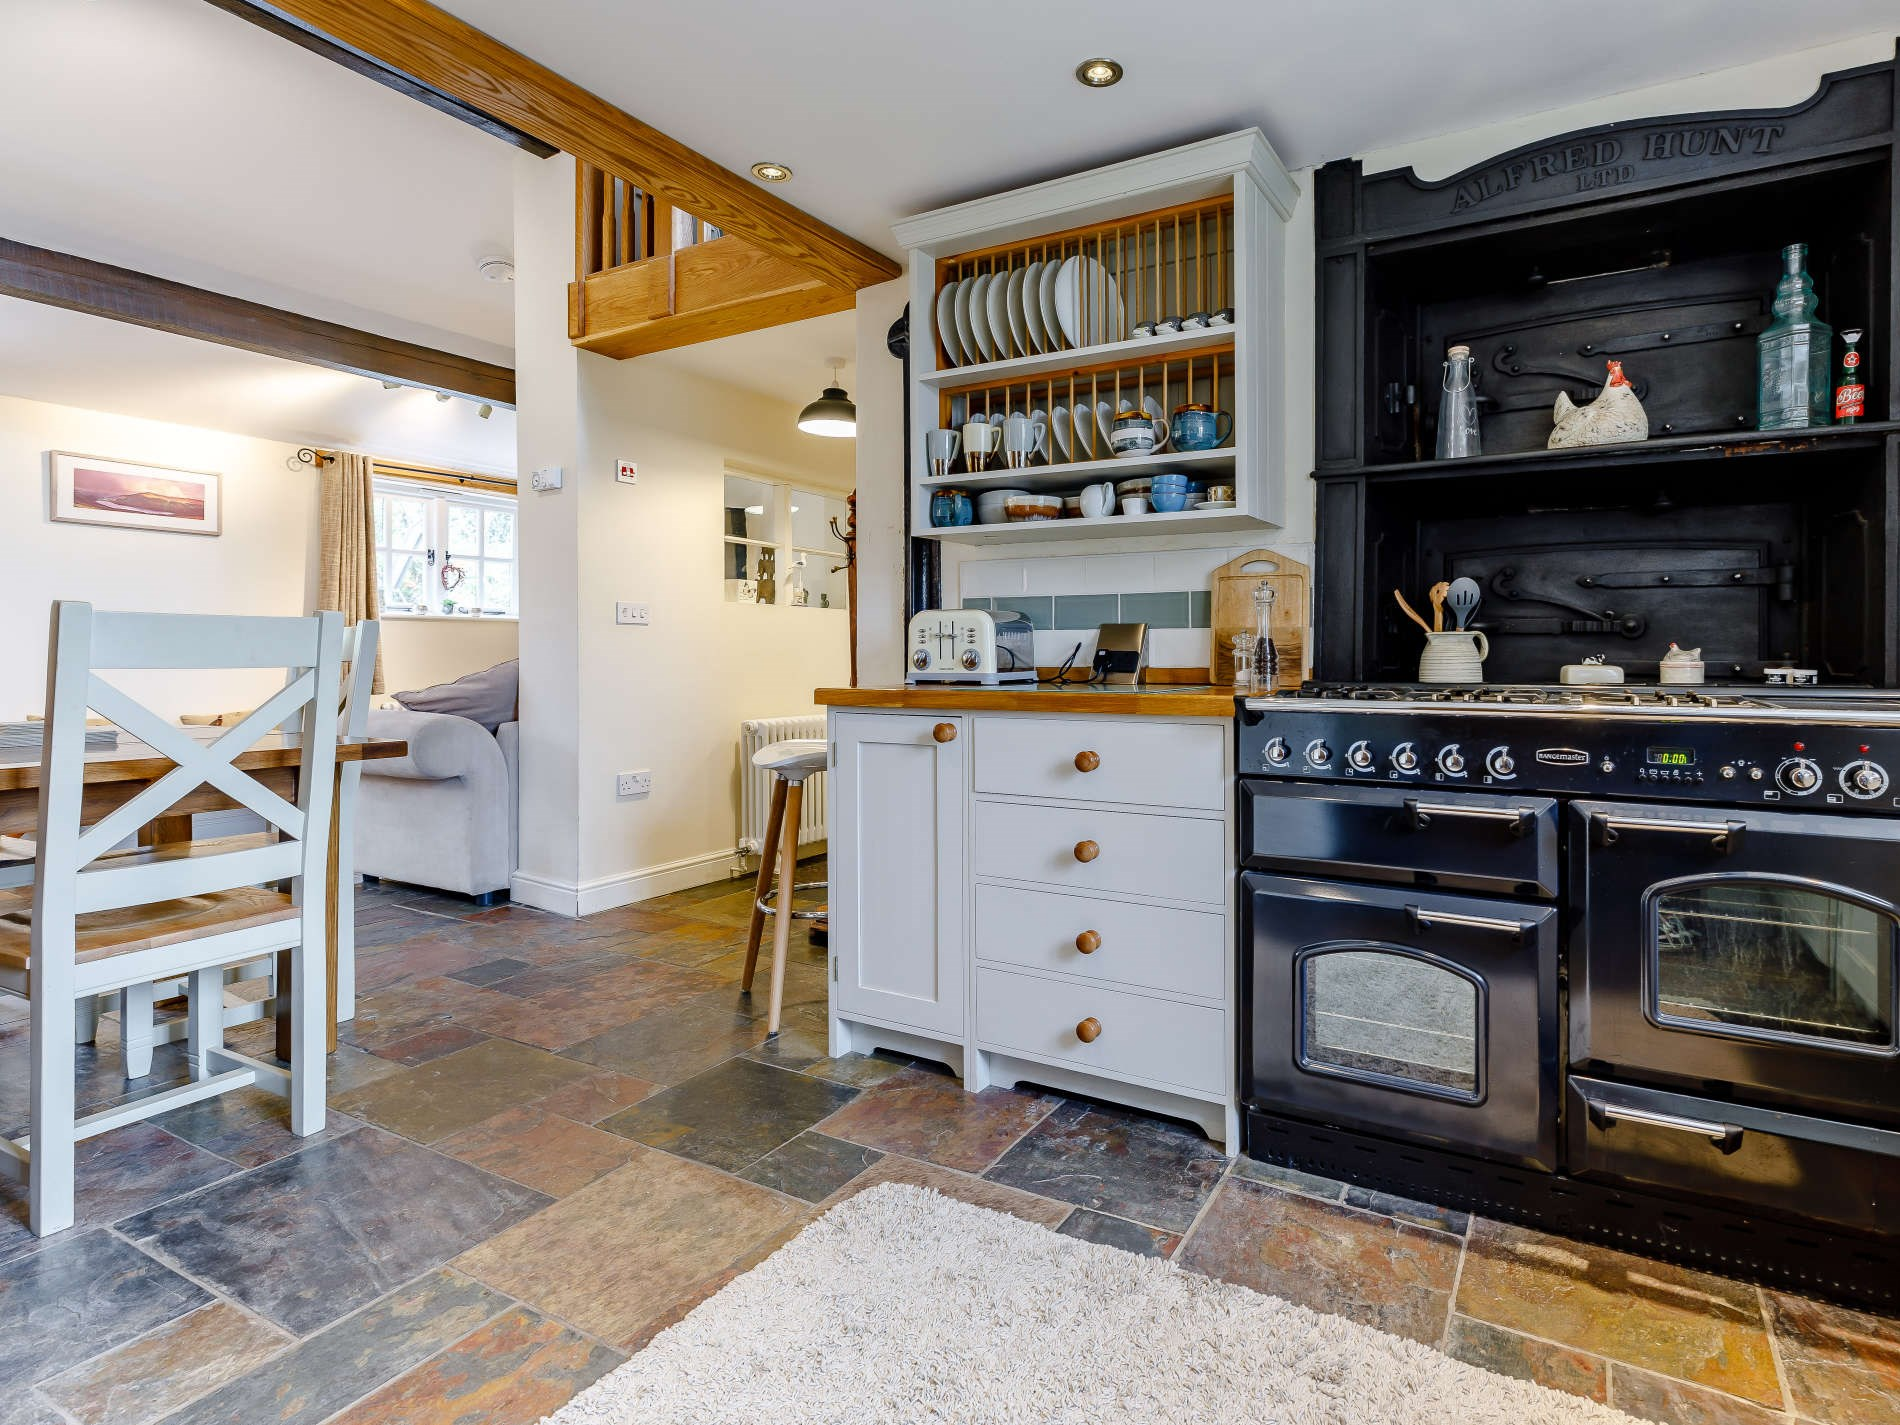 2 Bedroom Cottage in Herefordshire, Heart of England